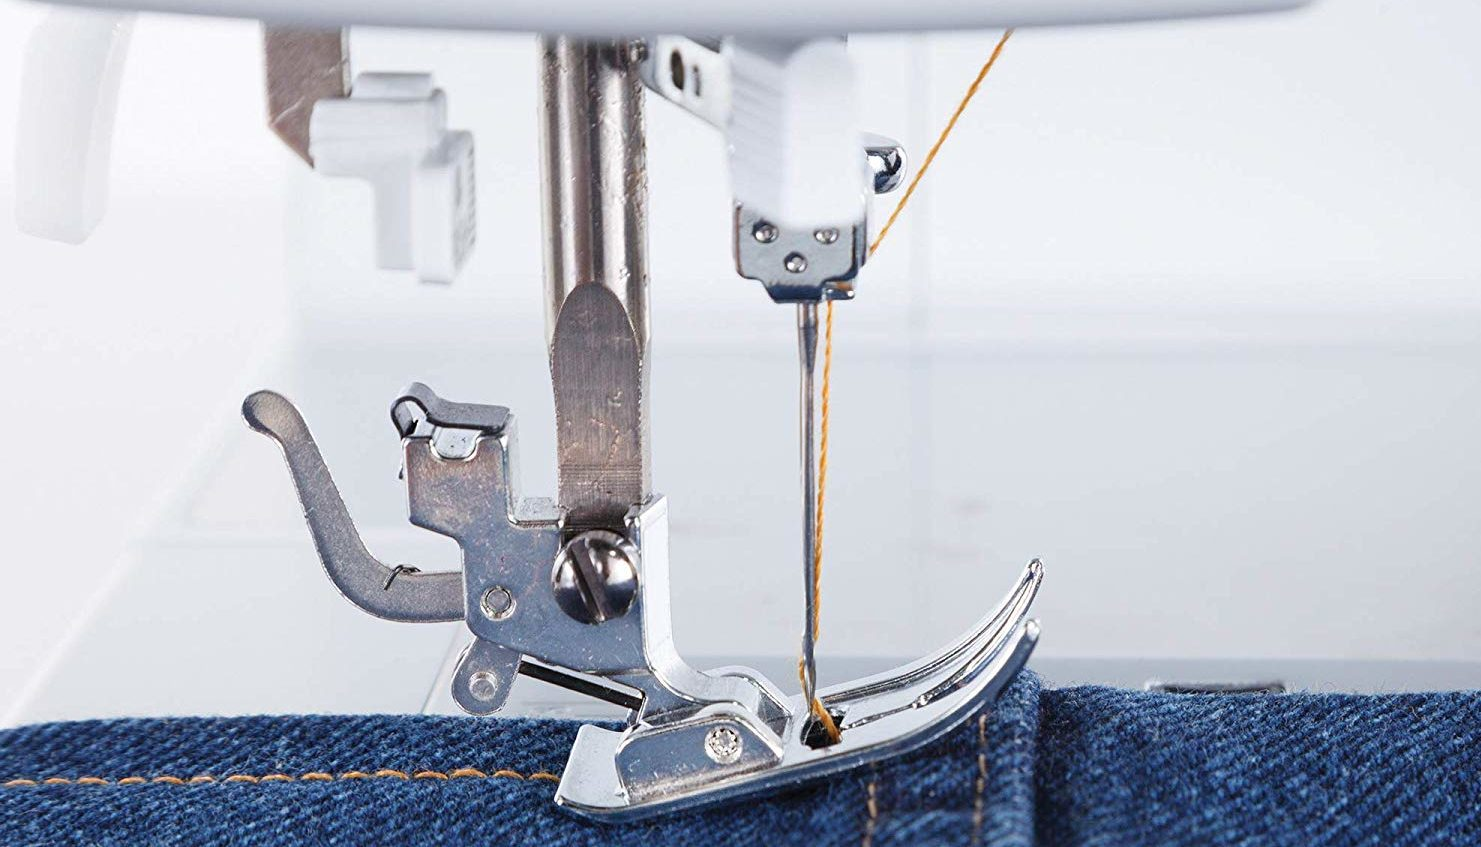 The #1 Best Selling Sewing Machine On Amazon Is Now On Sale For Over $60 Off